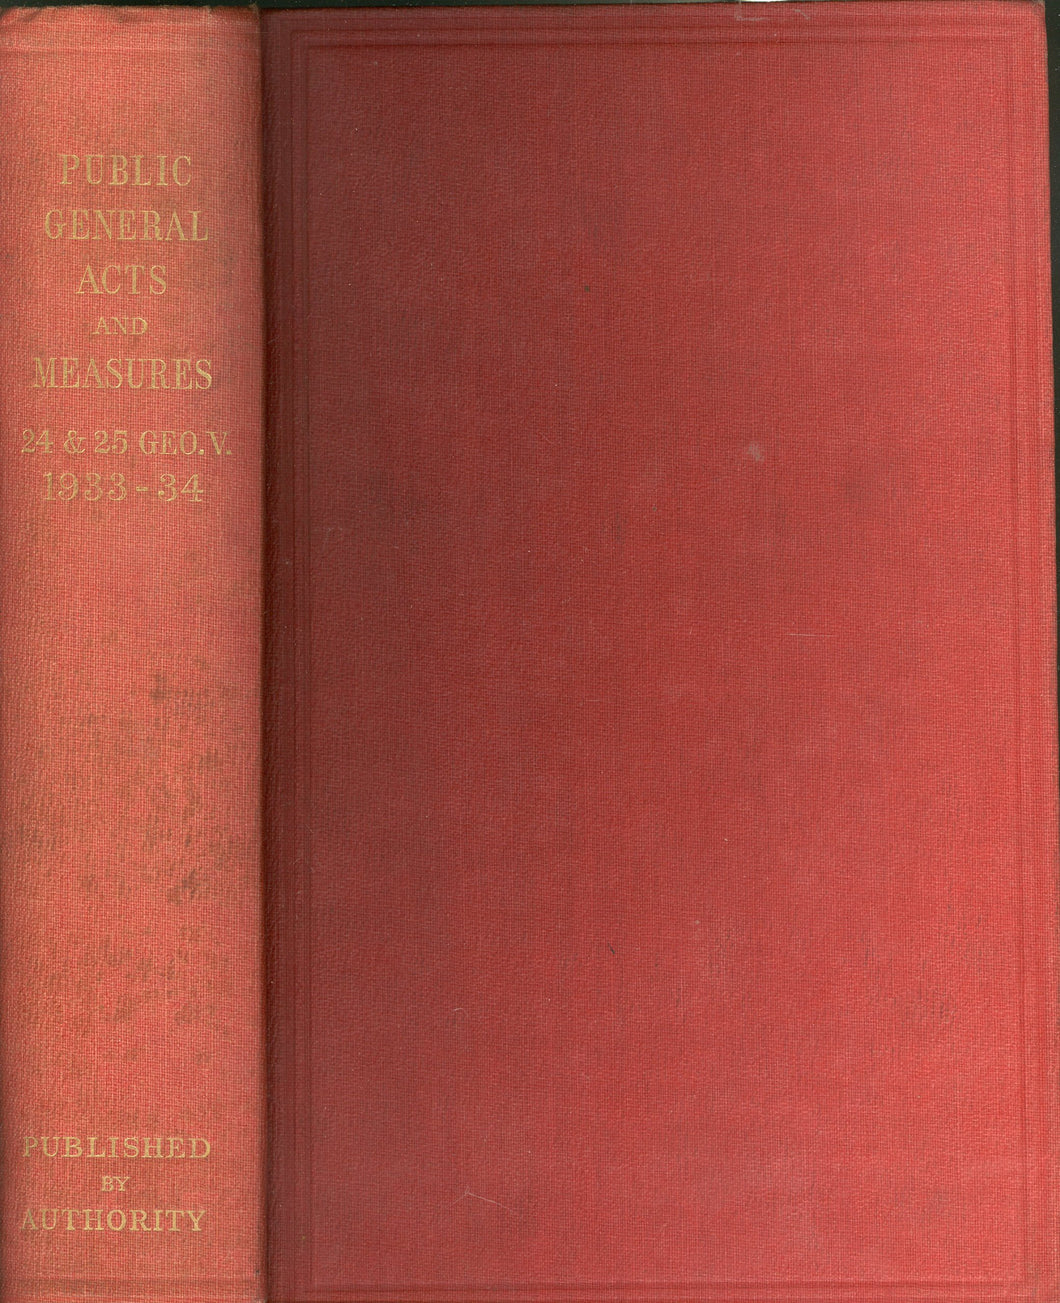 Public General Acts and Measures 24 & 25 Geo. V. 1933-34